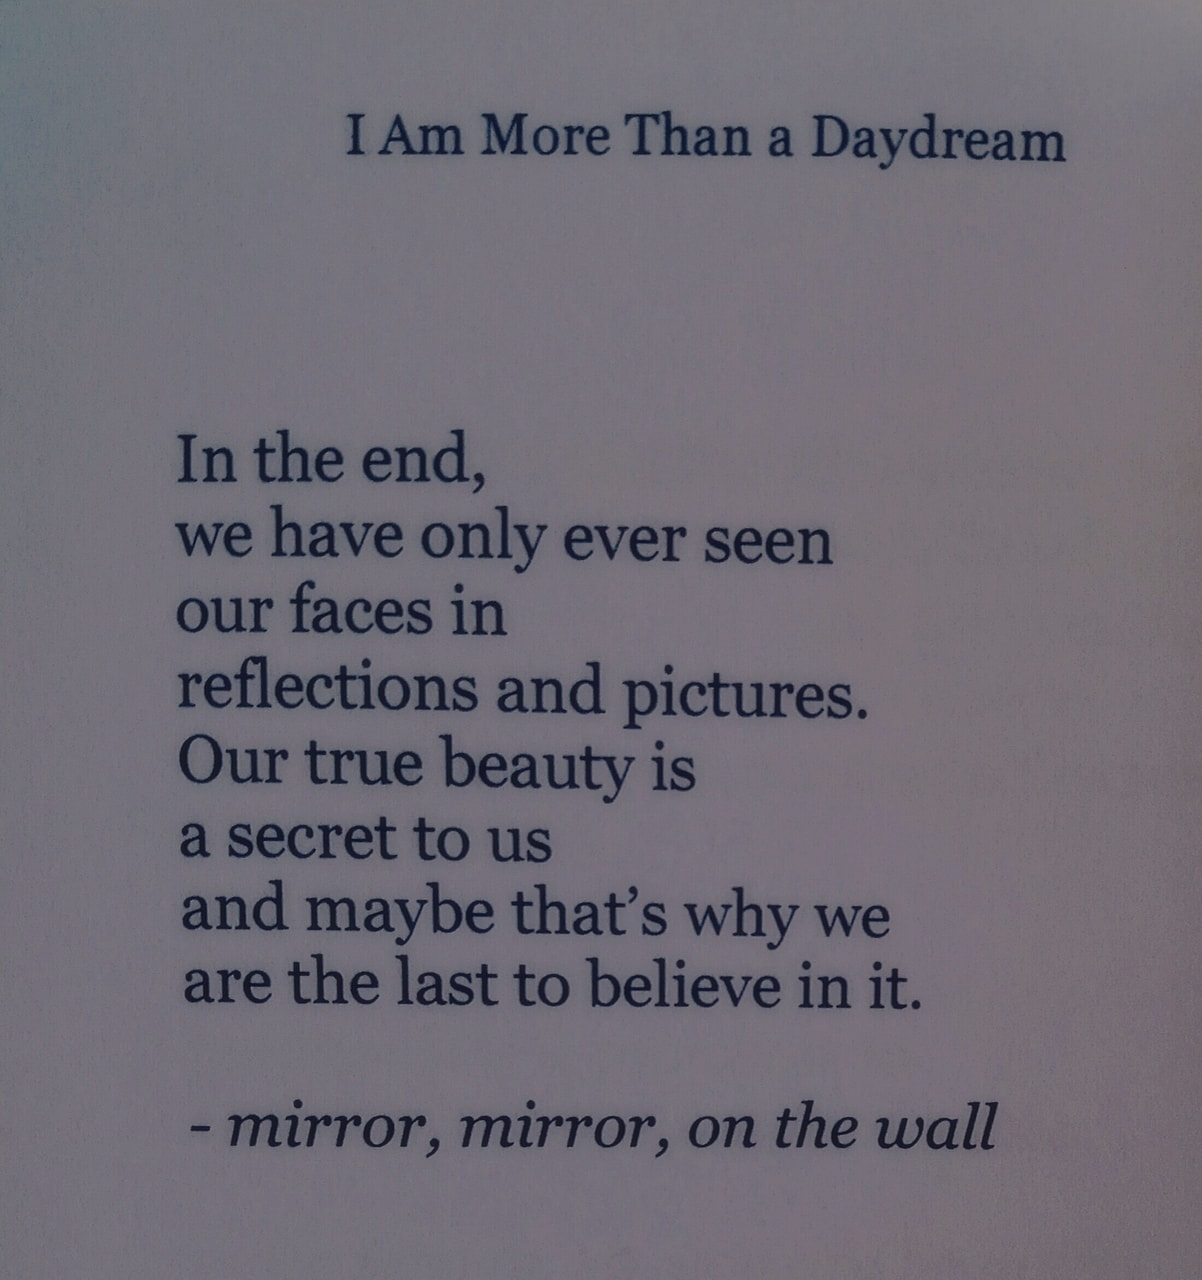 daydream, poetry art, deep poetry and gedichte